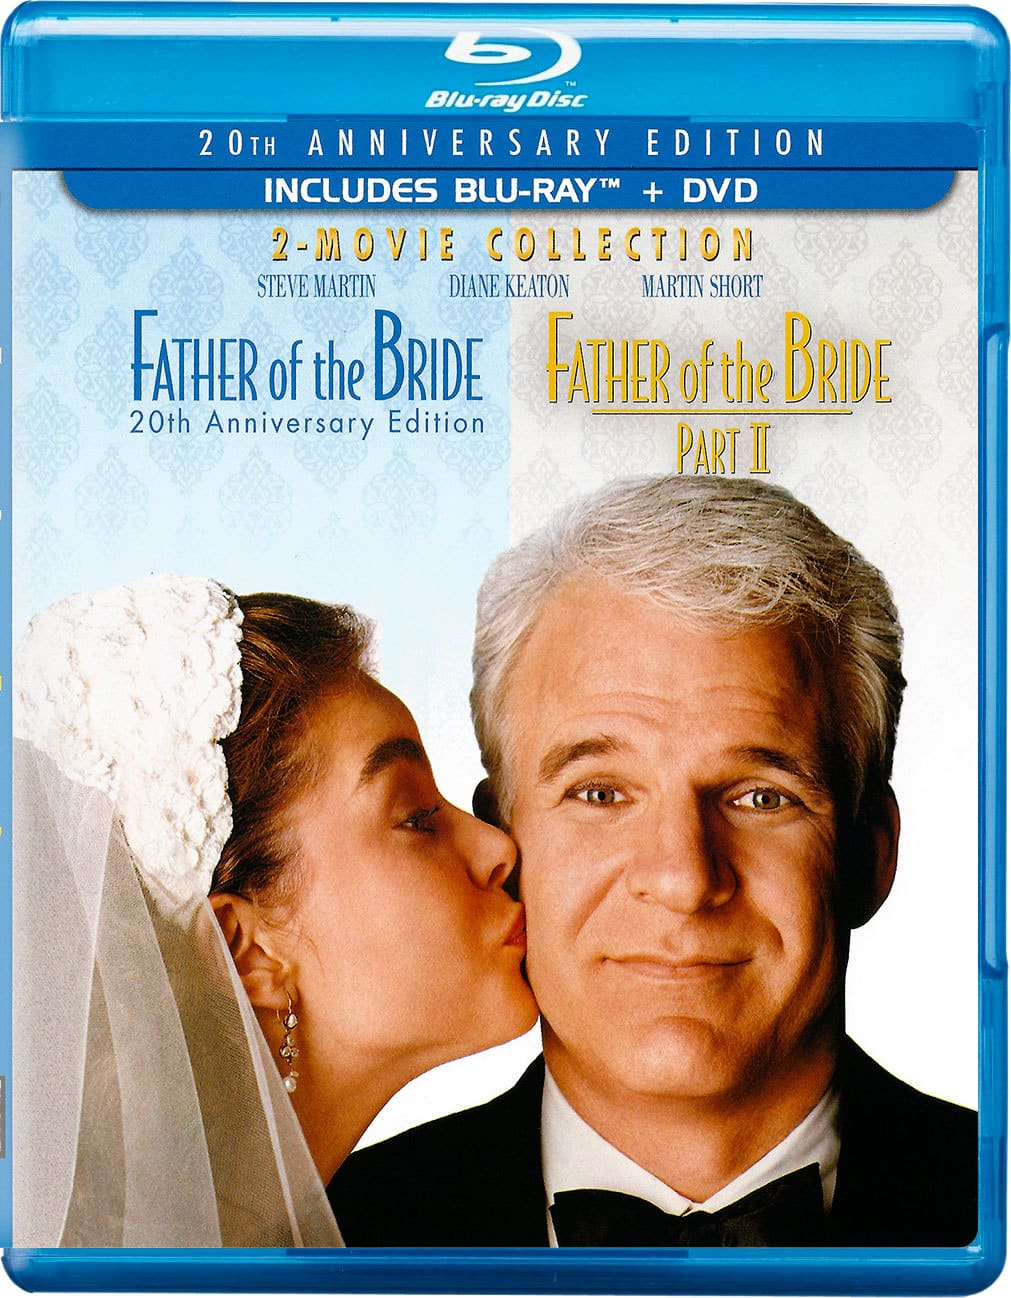 Father of the Bride 1 & 2 Collection (Blu-ray + DVD) $13